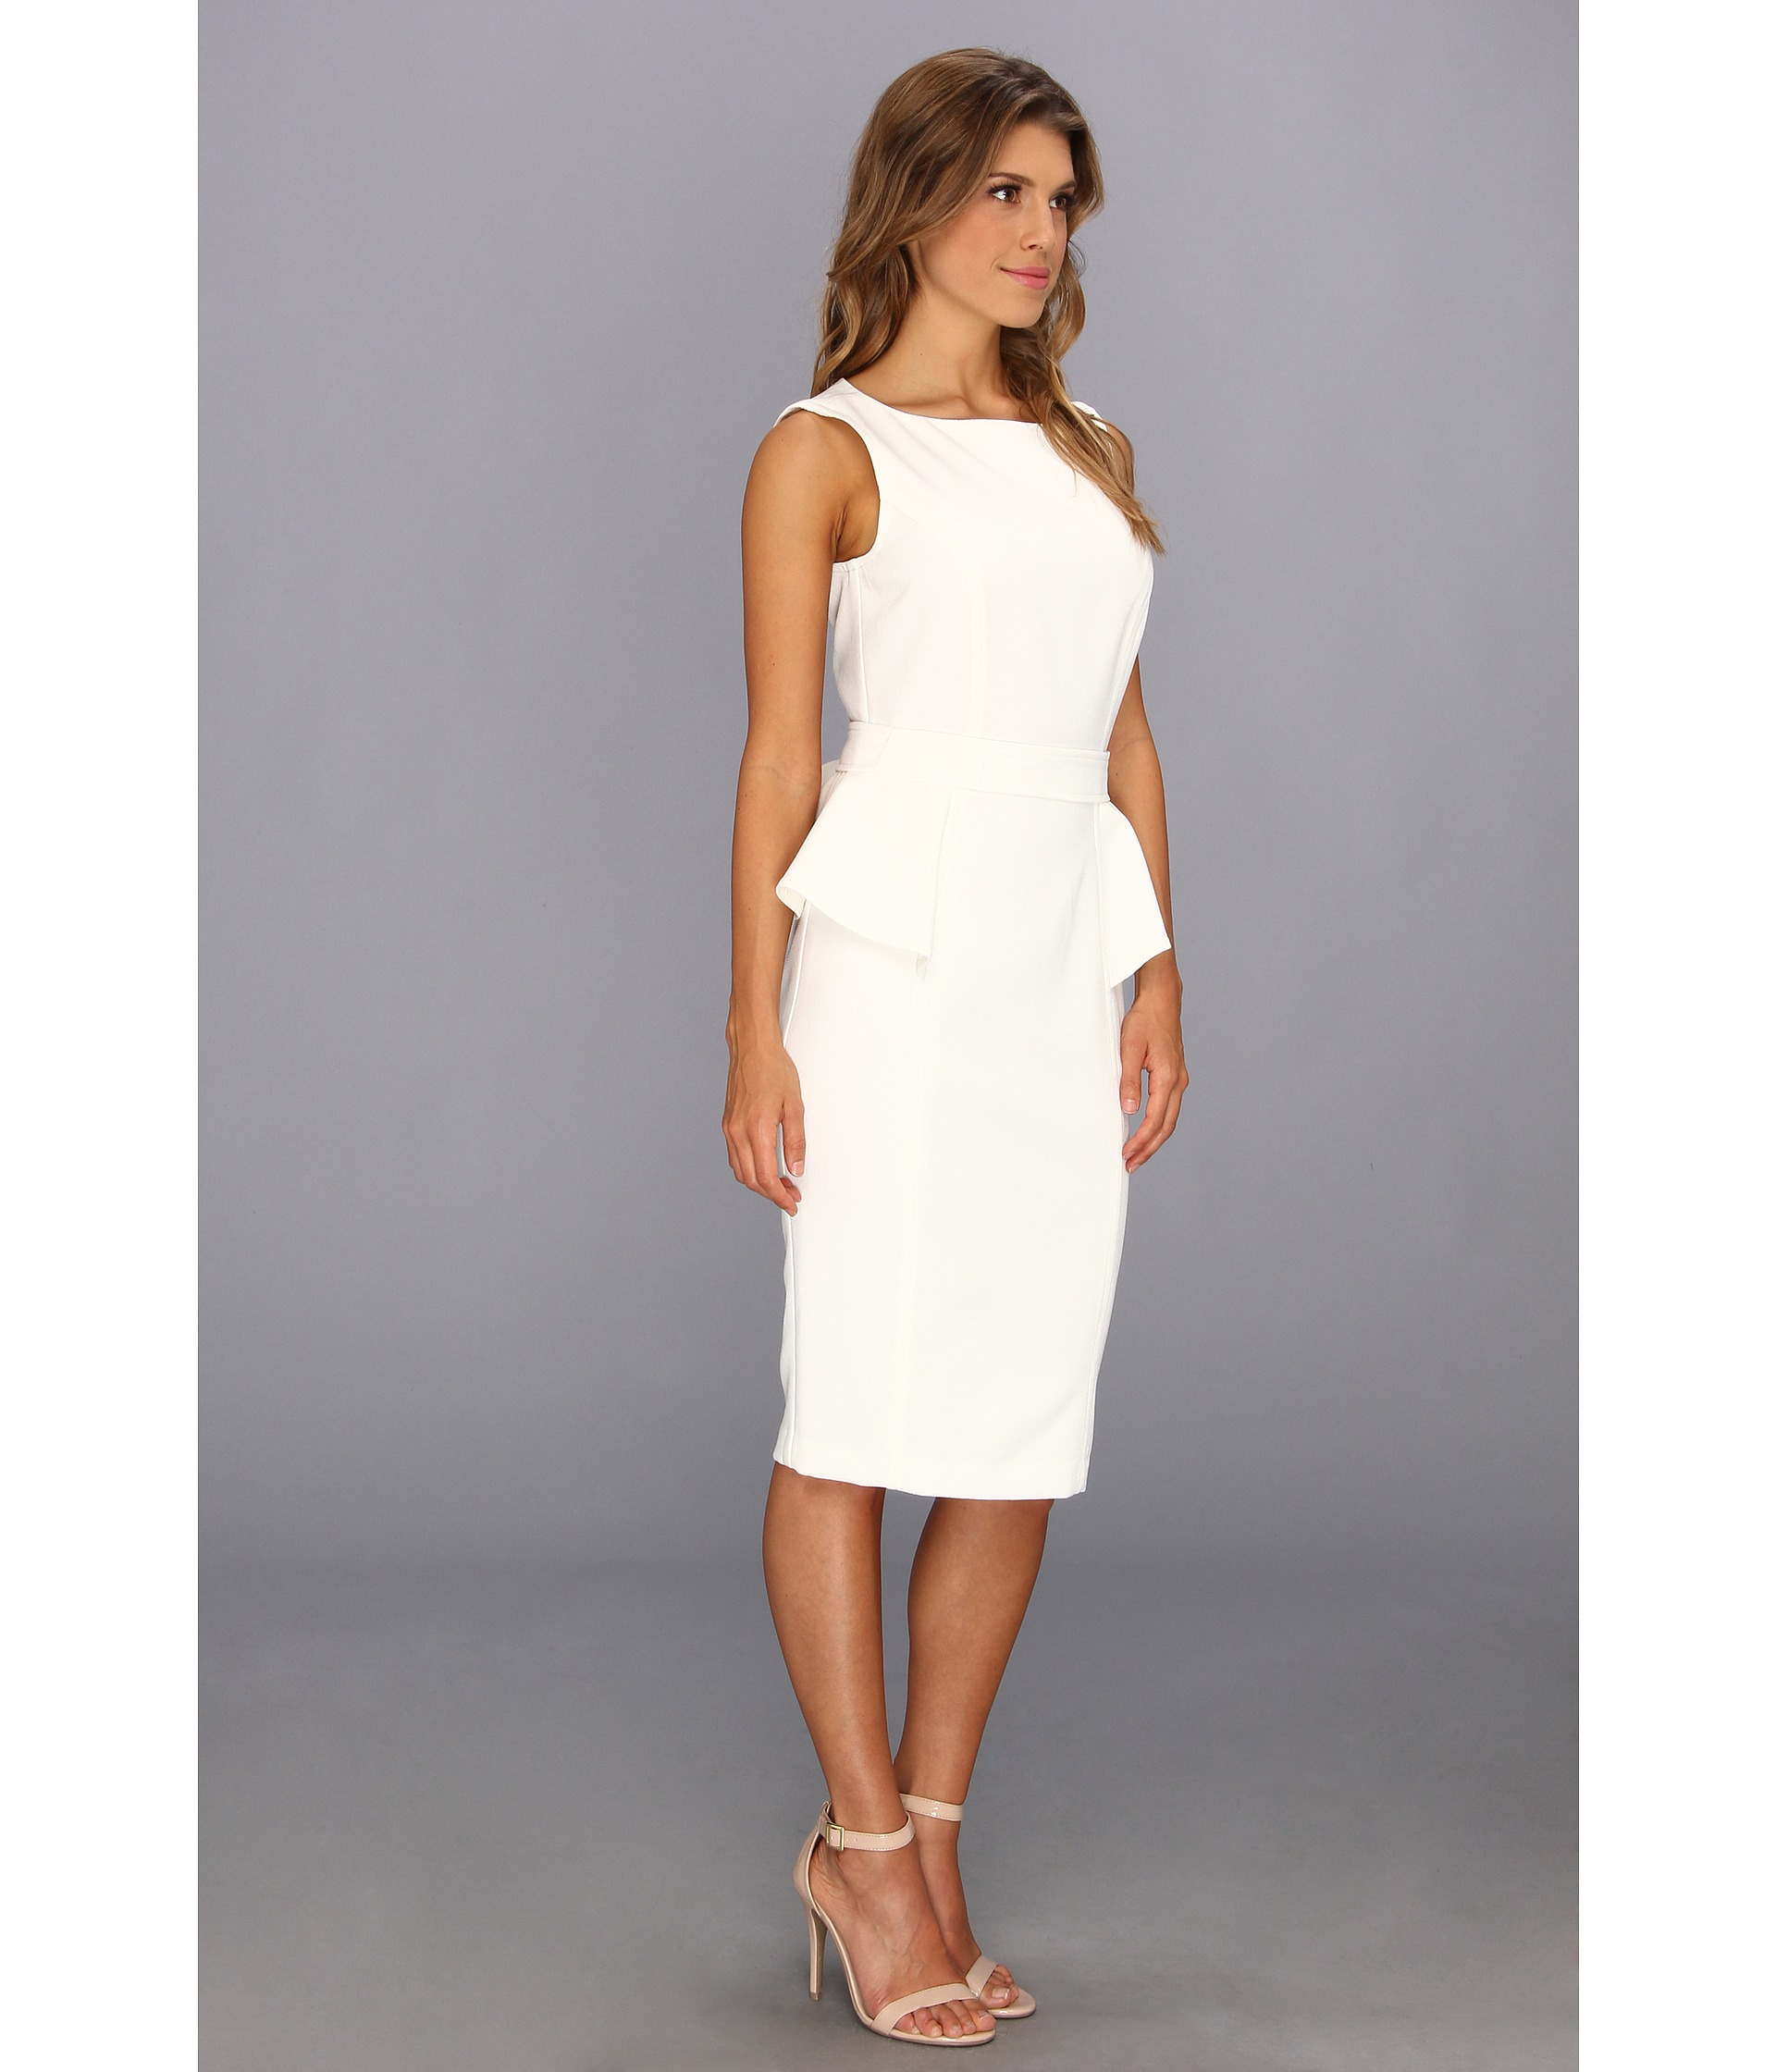 cbd1c06a271 Gallery. Previously sold at  Zappos · Women s White Cocktail Dresses  Women s Peplum Dresses